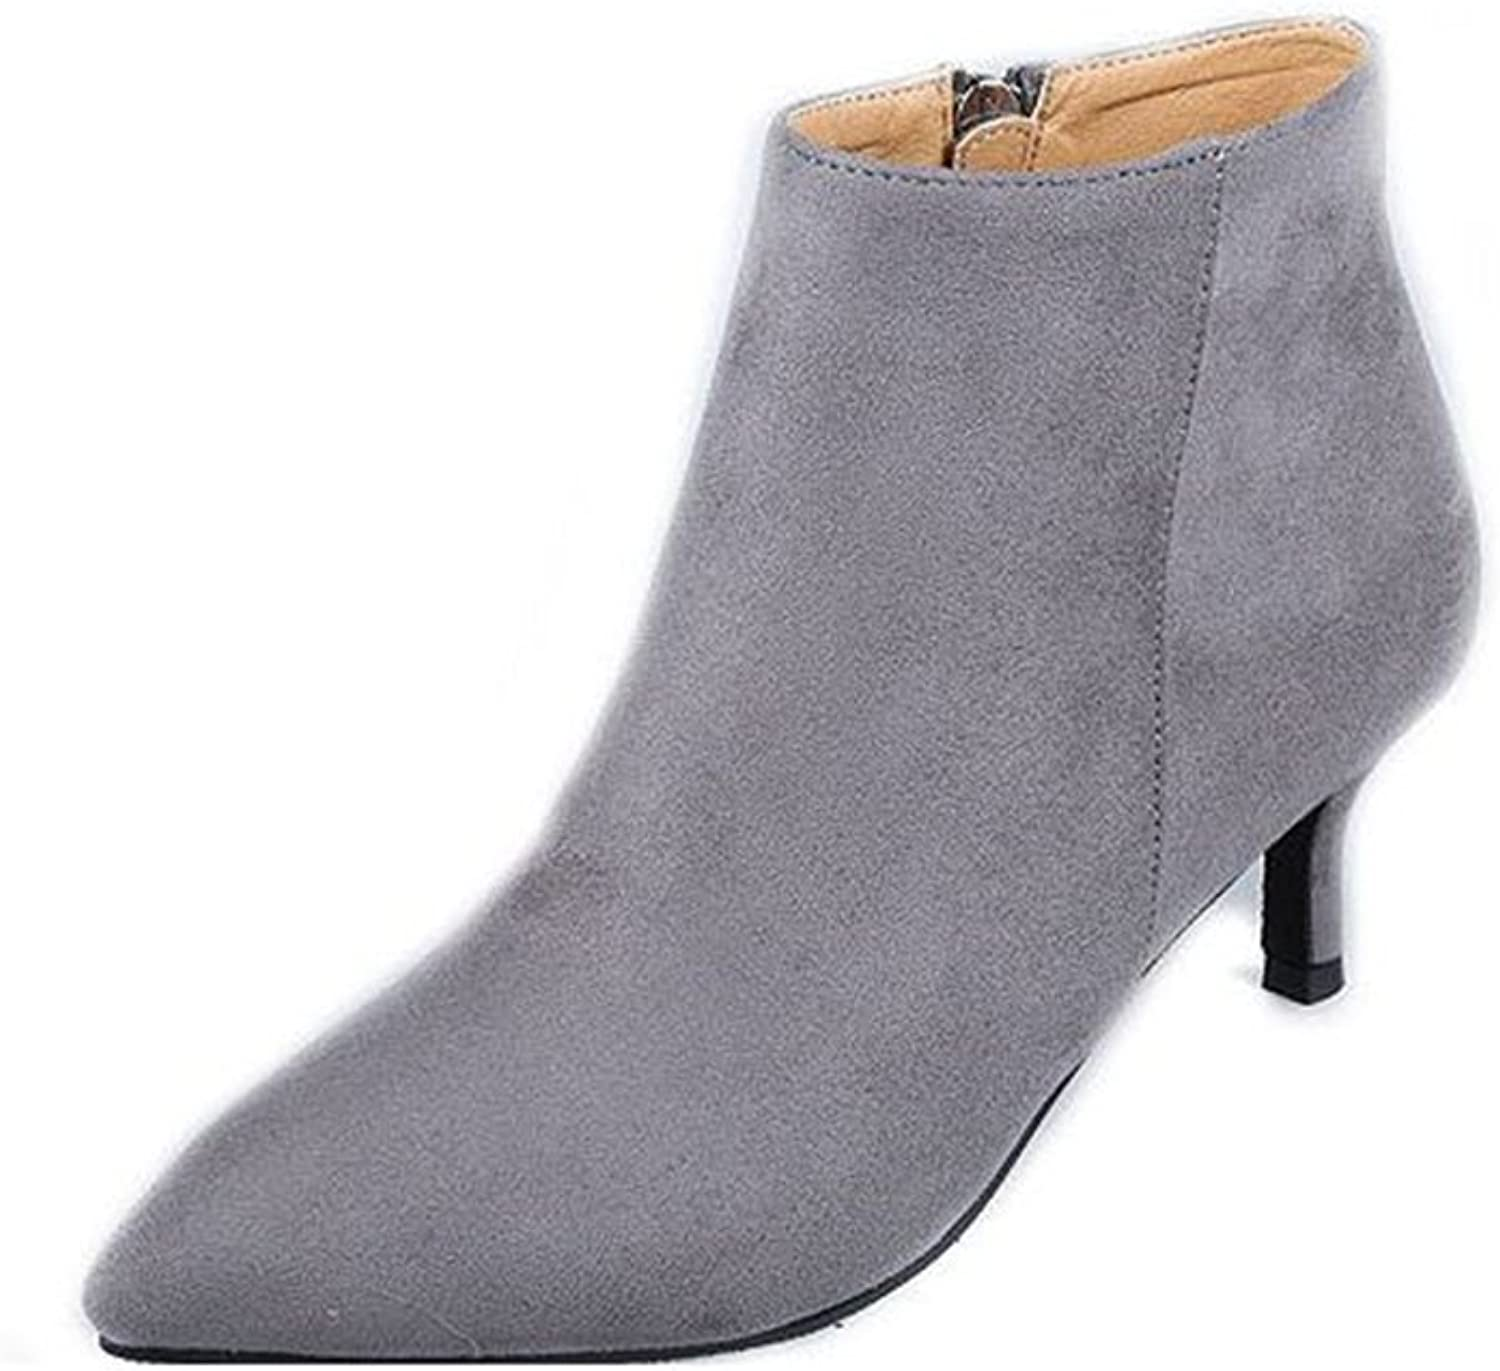 CHENSF Women's Fashion Zipper Ankle High Booties